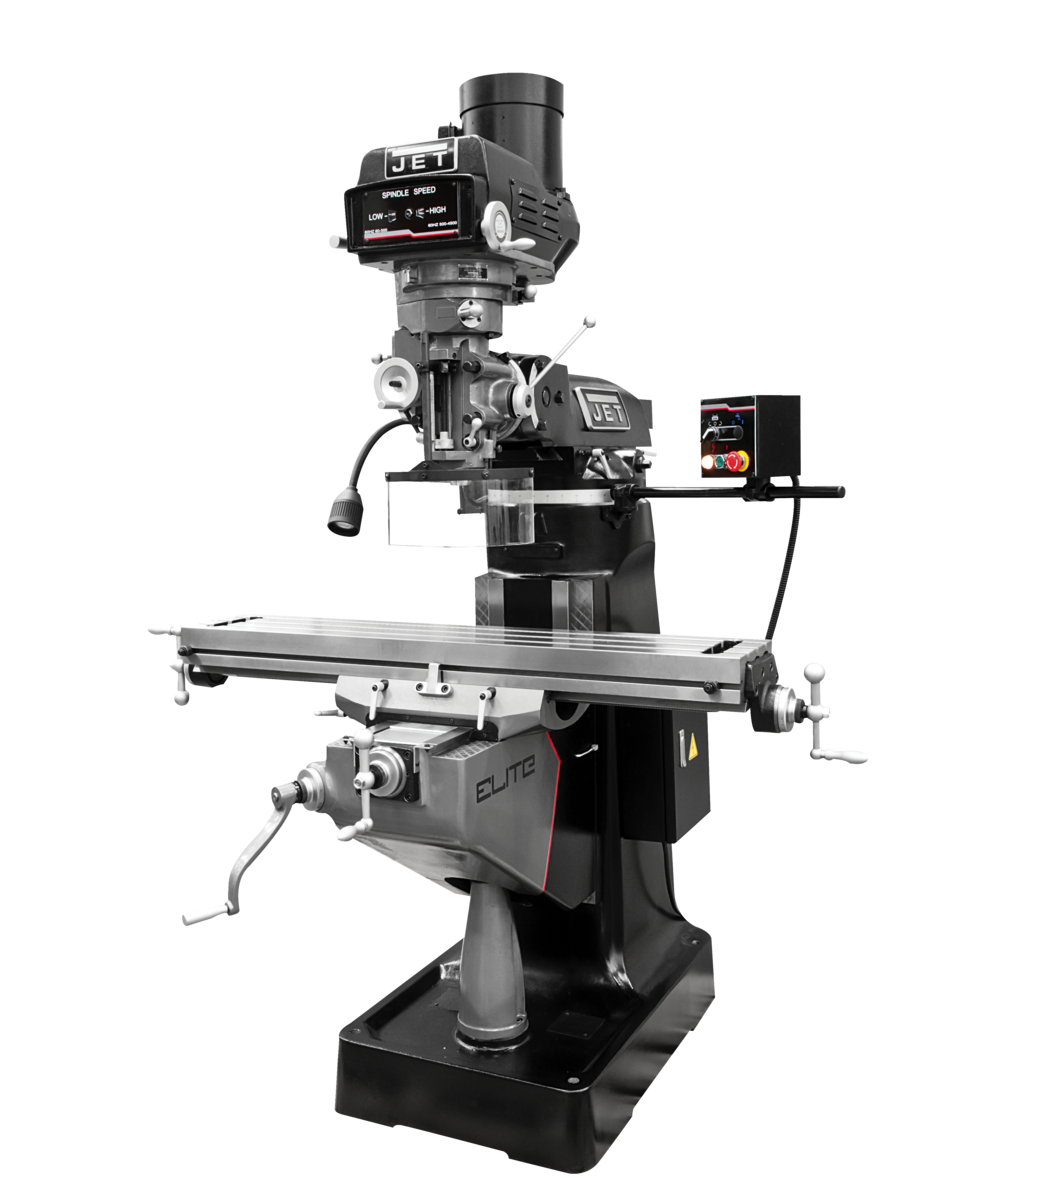 ETM-949 Mill with 3-Axis ACU-RITE 203 (Quill) DRO and X-Axis JET Powerfeed